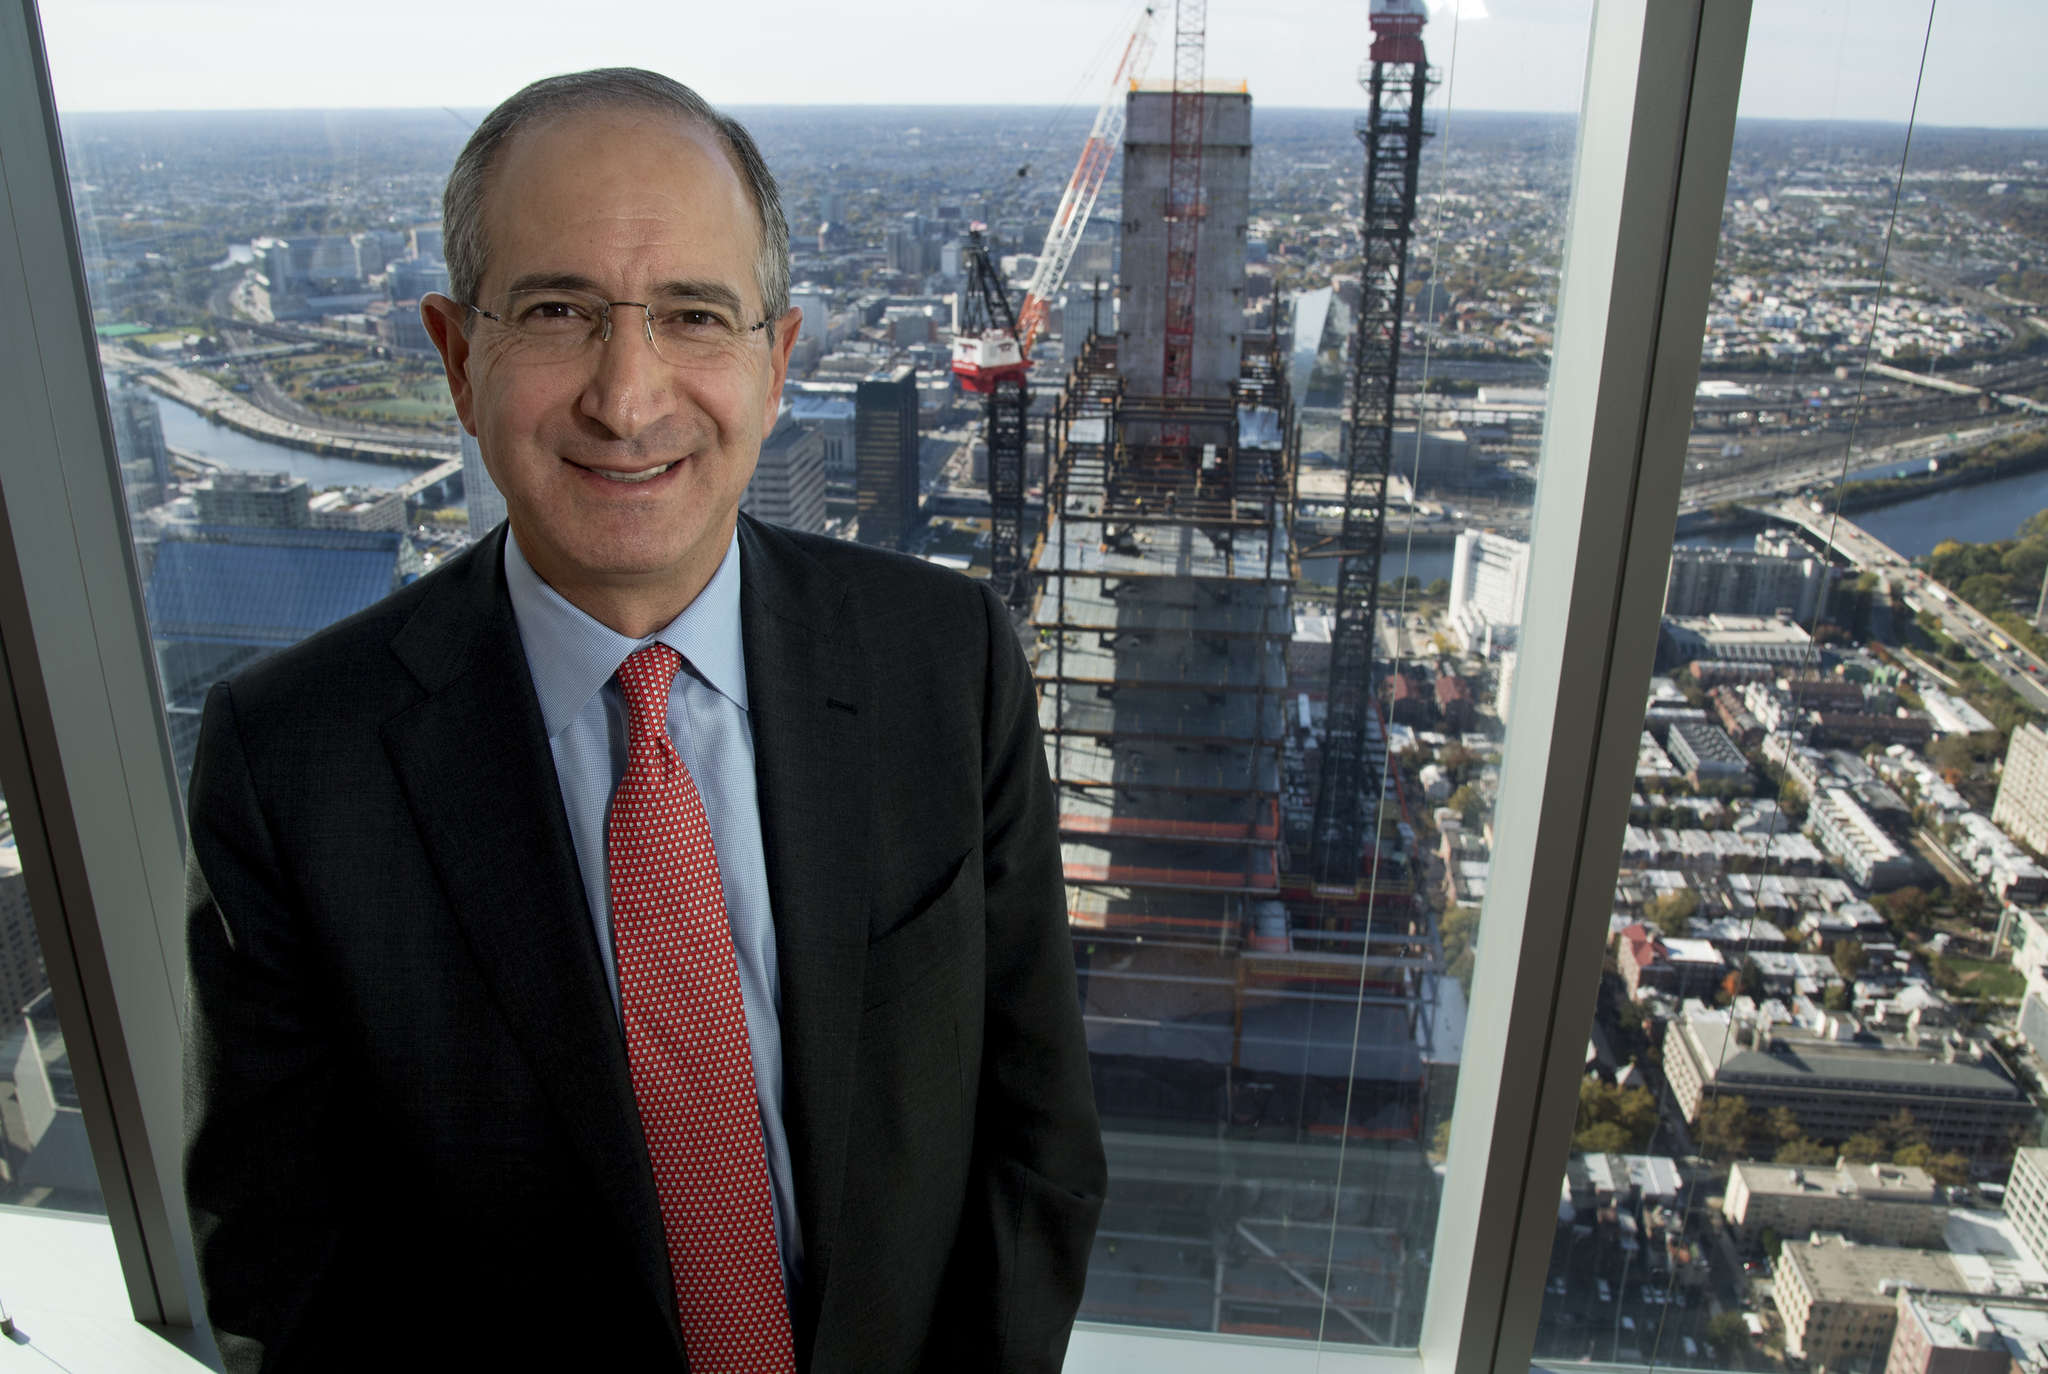 Brian L. Roberts, Comcast CEO, at the Comcast Center, whose second tower is under construction behind him.